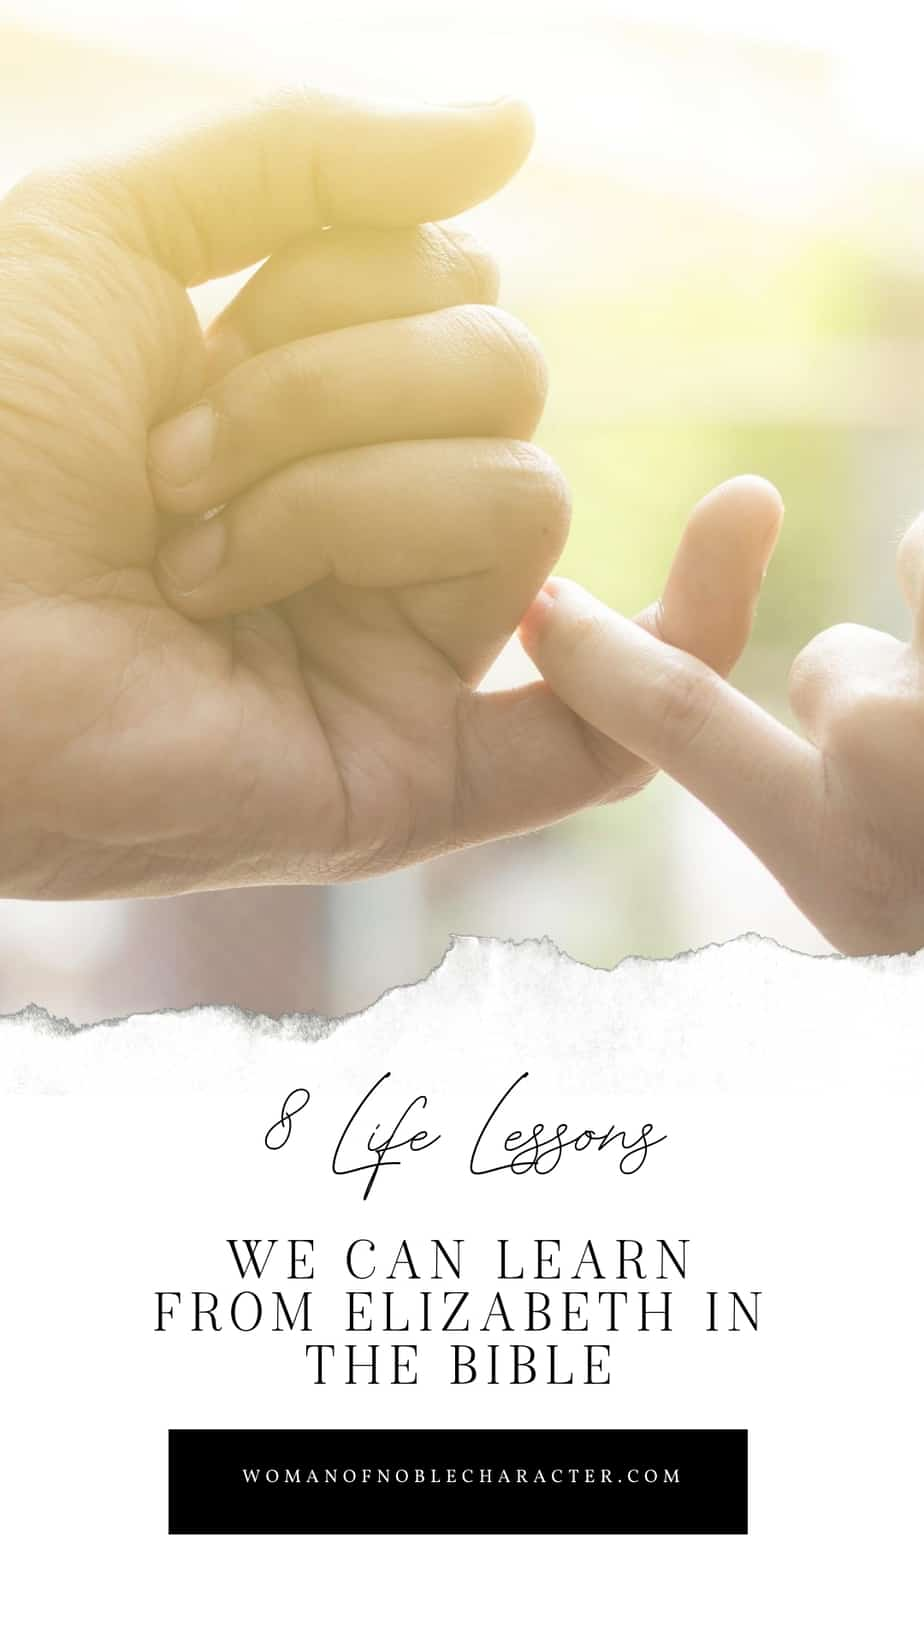 """An image of 2 people interlocking pinkies with text that says, """"8 Life Lessons We Can Learn from Elizabeth in the Bible"""""""